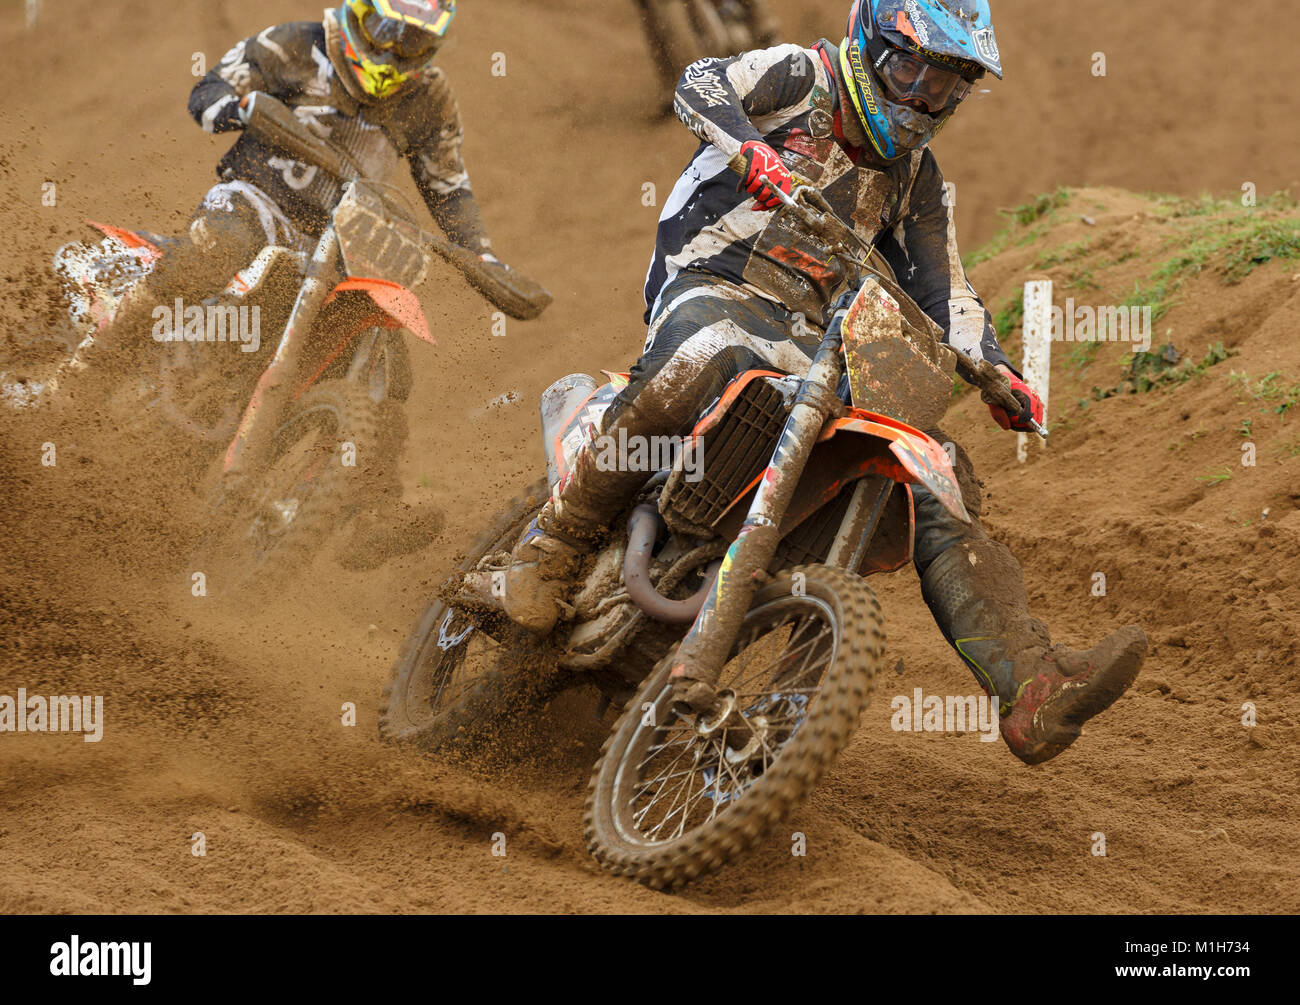 Jake Nicholls on the Tru-7.com KTM 450 at the NGR & ACU Eastern EVO Solo Motocross Championships, Cadders Hill, - Stock Image